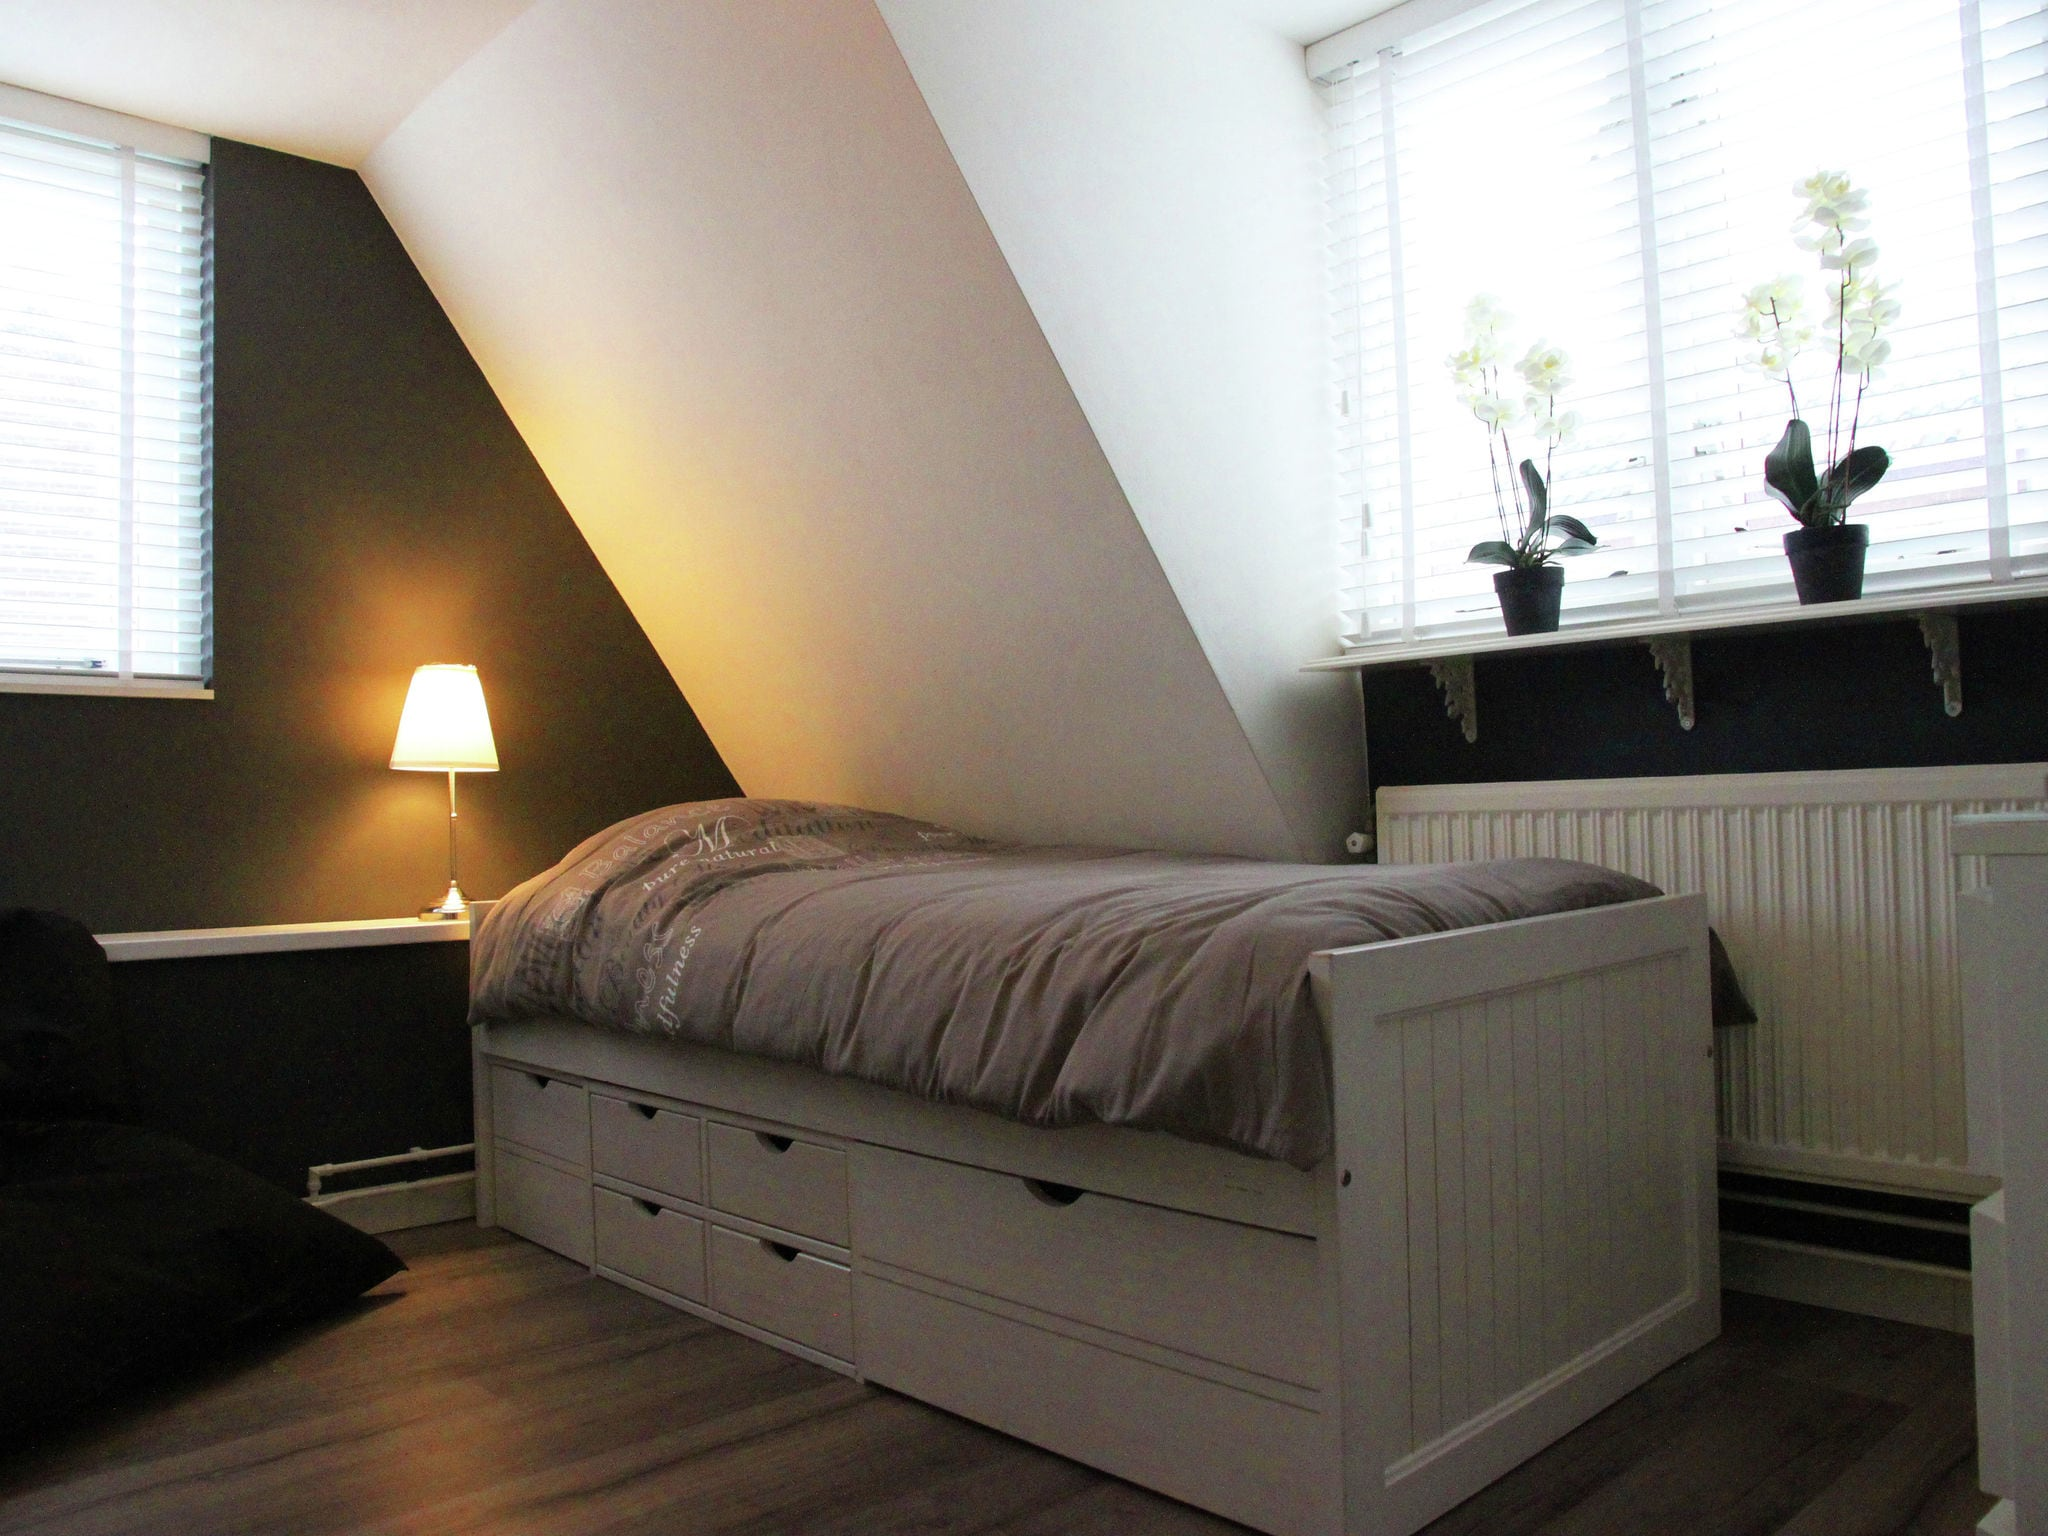 Holland | North Sea Coast North | Holiday home Zilte Lucht | Holidays | BedRoom